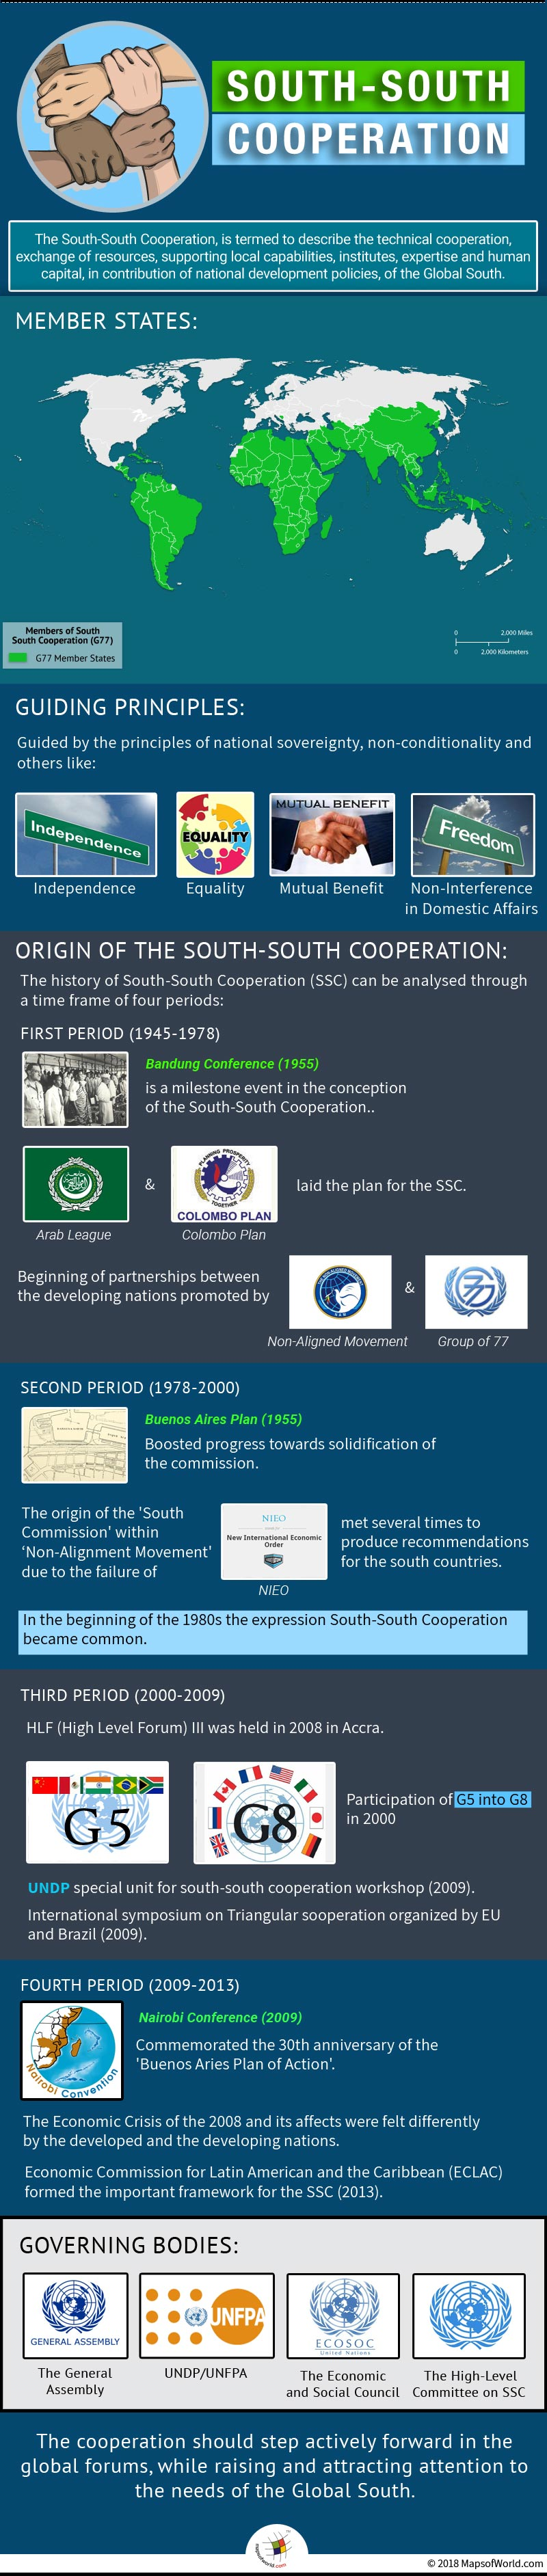 Infographic elaborating south-south cooperation